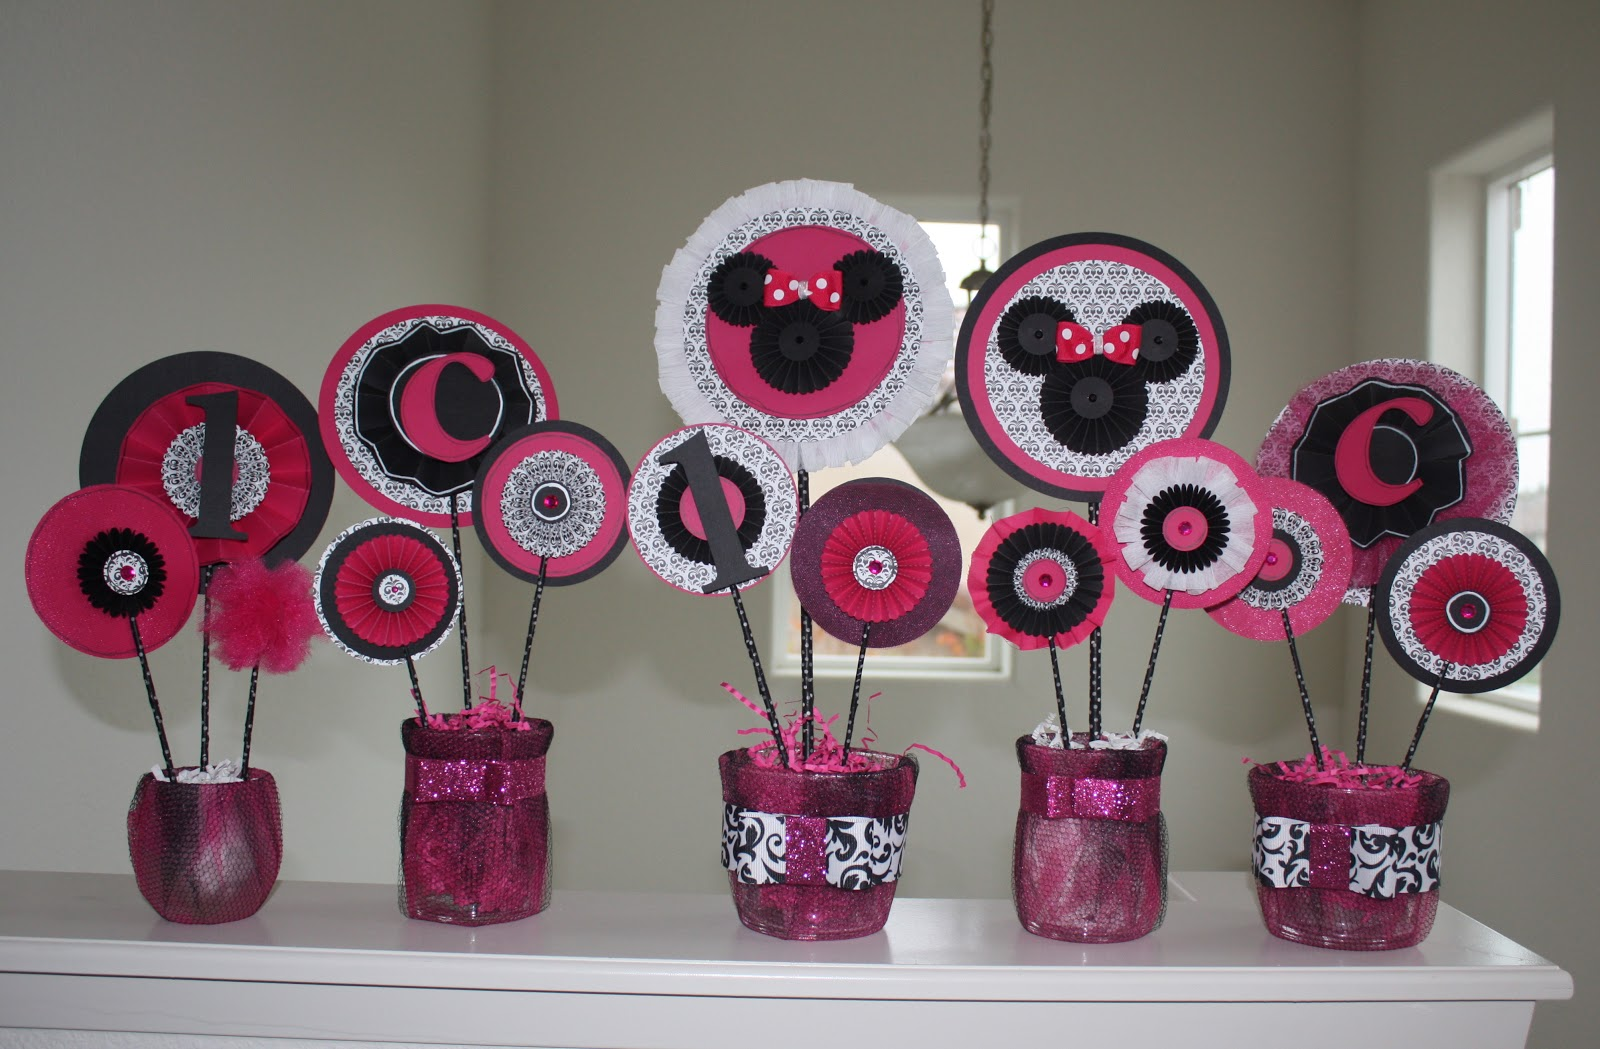 thePinkApe Minnie Mouse Birthday Decor